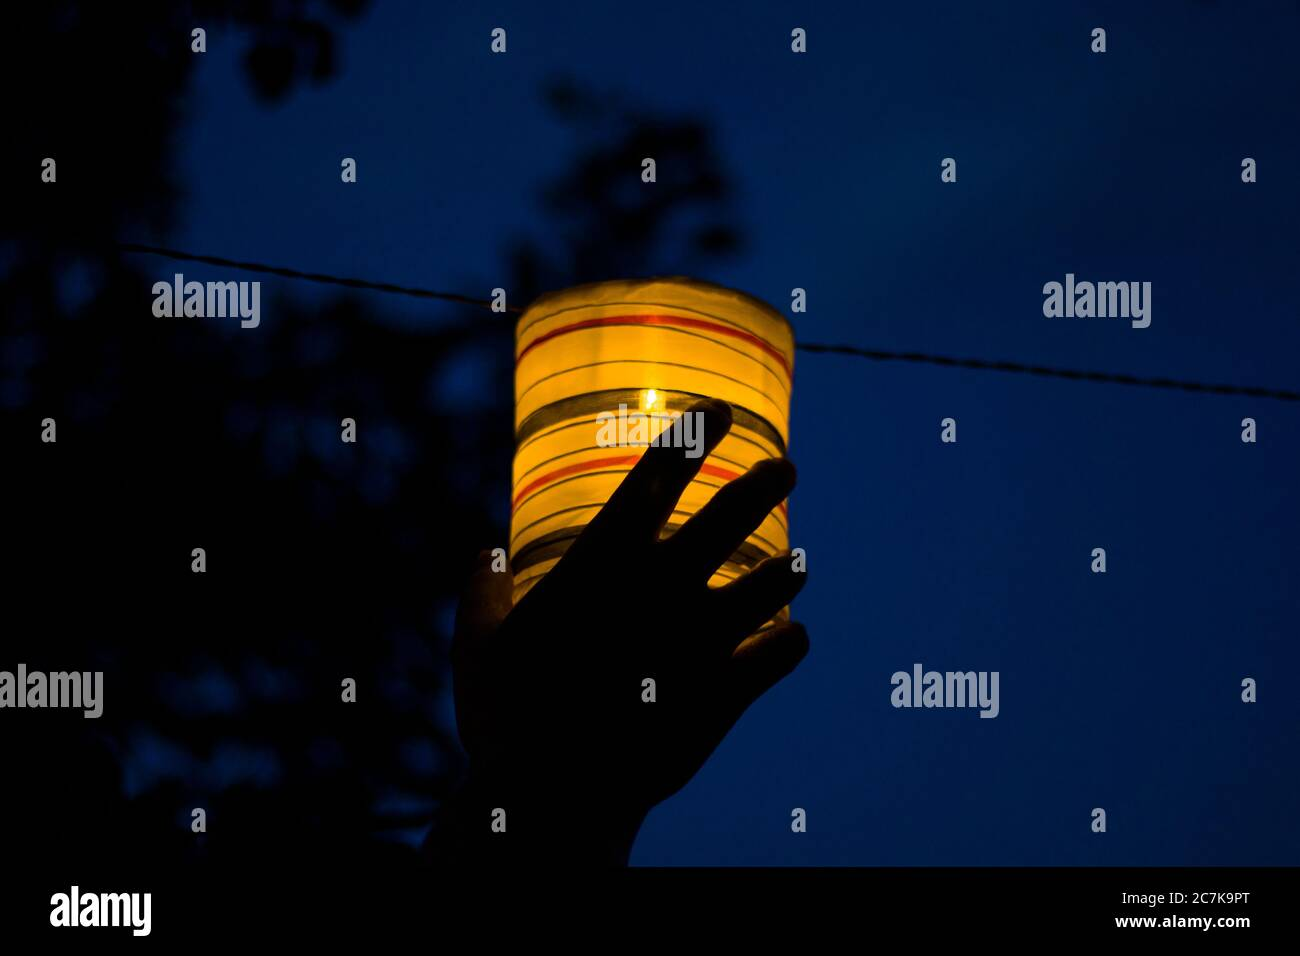 Lantern in the yard, night and warm light, hanging lanterns, natural light, evening time. Stock Photo